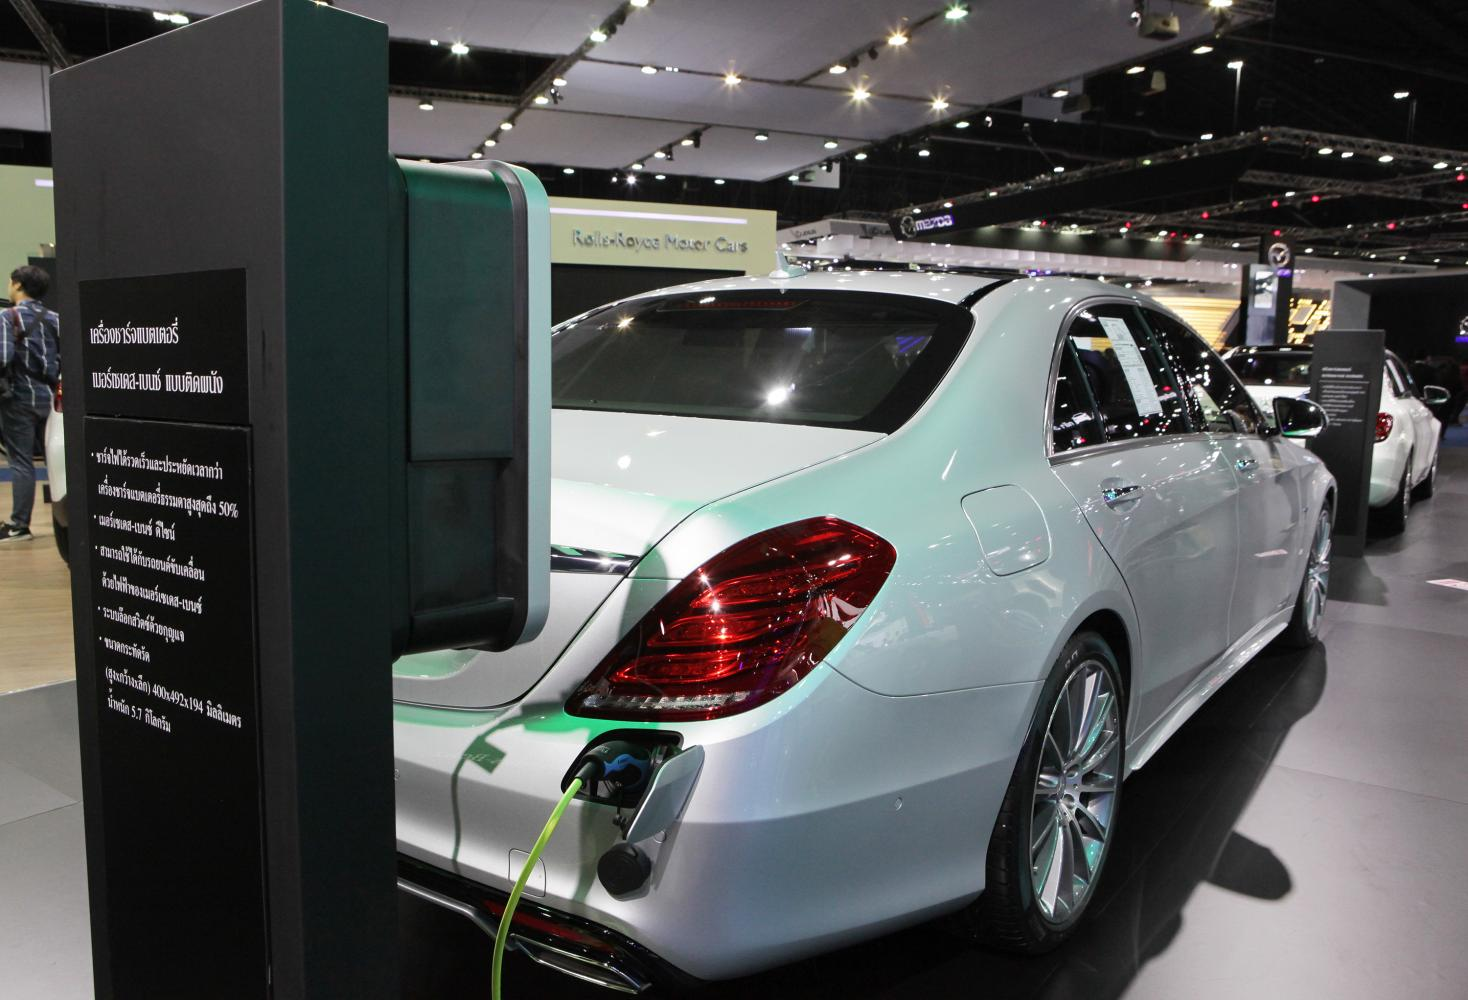 A Mercedes-Benz S500e plug-in hybrid on display at the Bangkok International Motor Show in 2017. (Photo by Tawatchai Kemgumnerd)